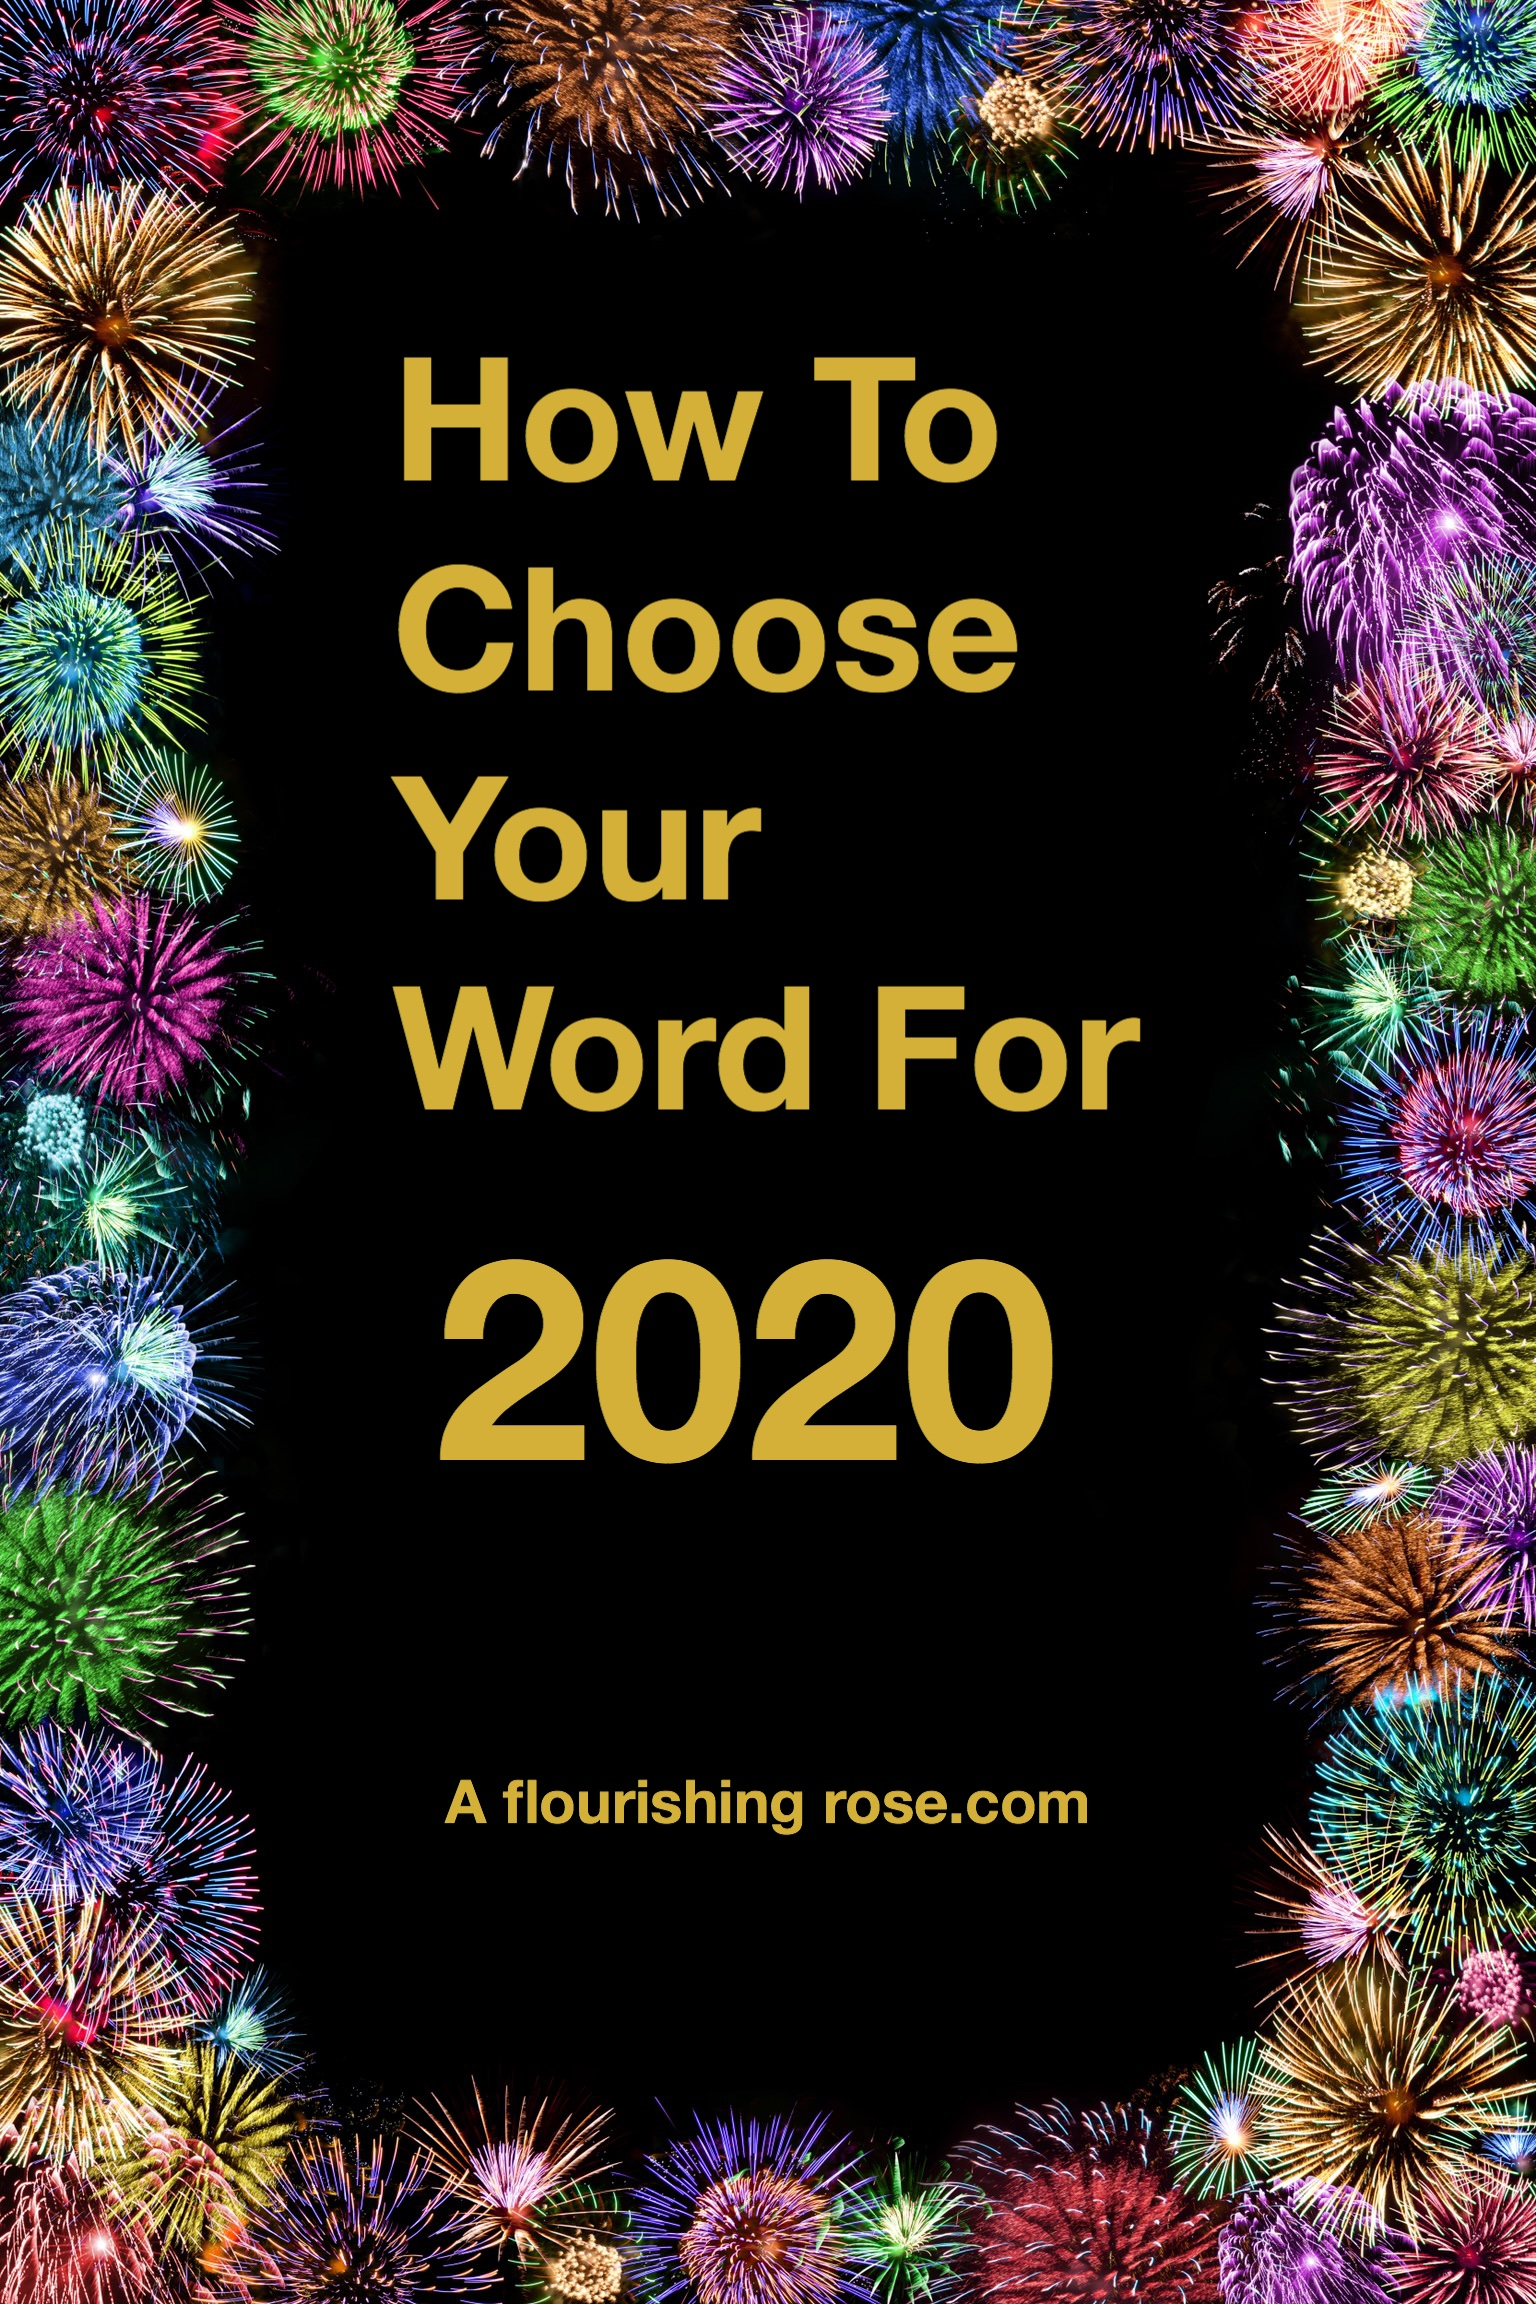 How to Choose Your Word for 2020